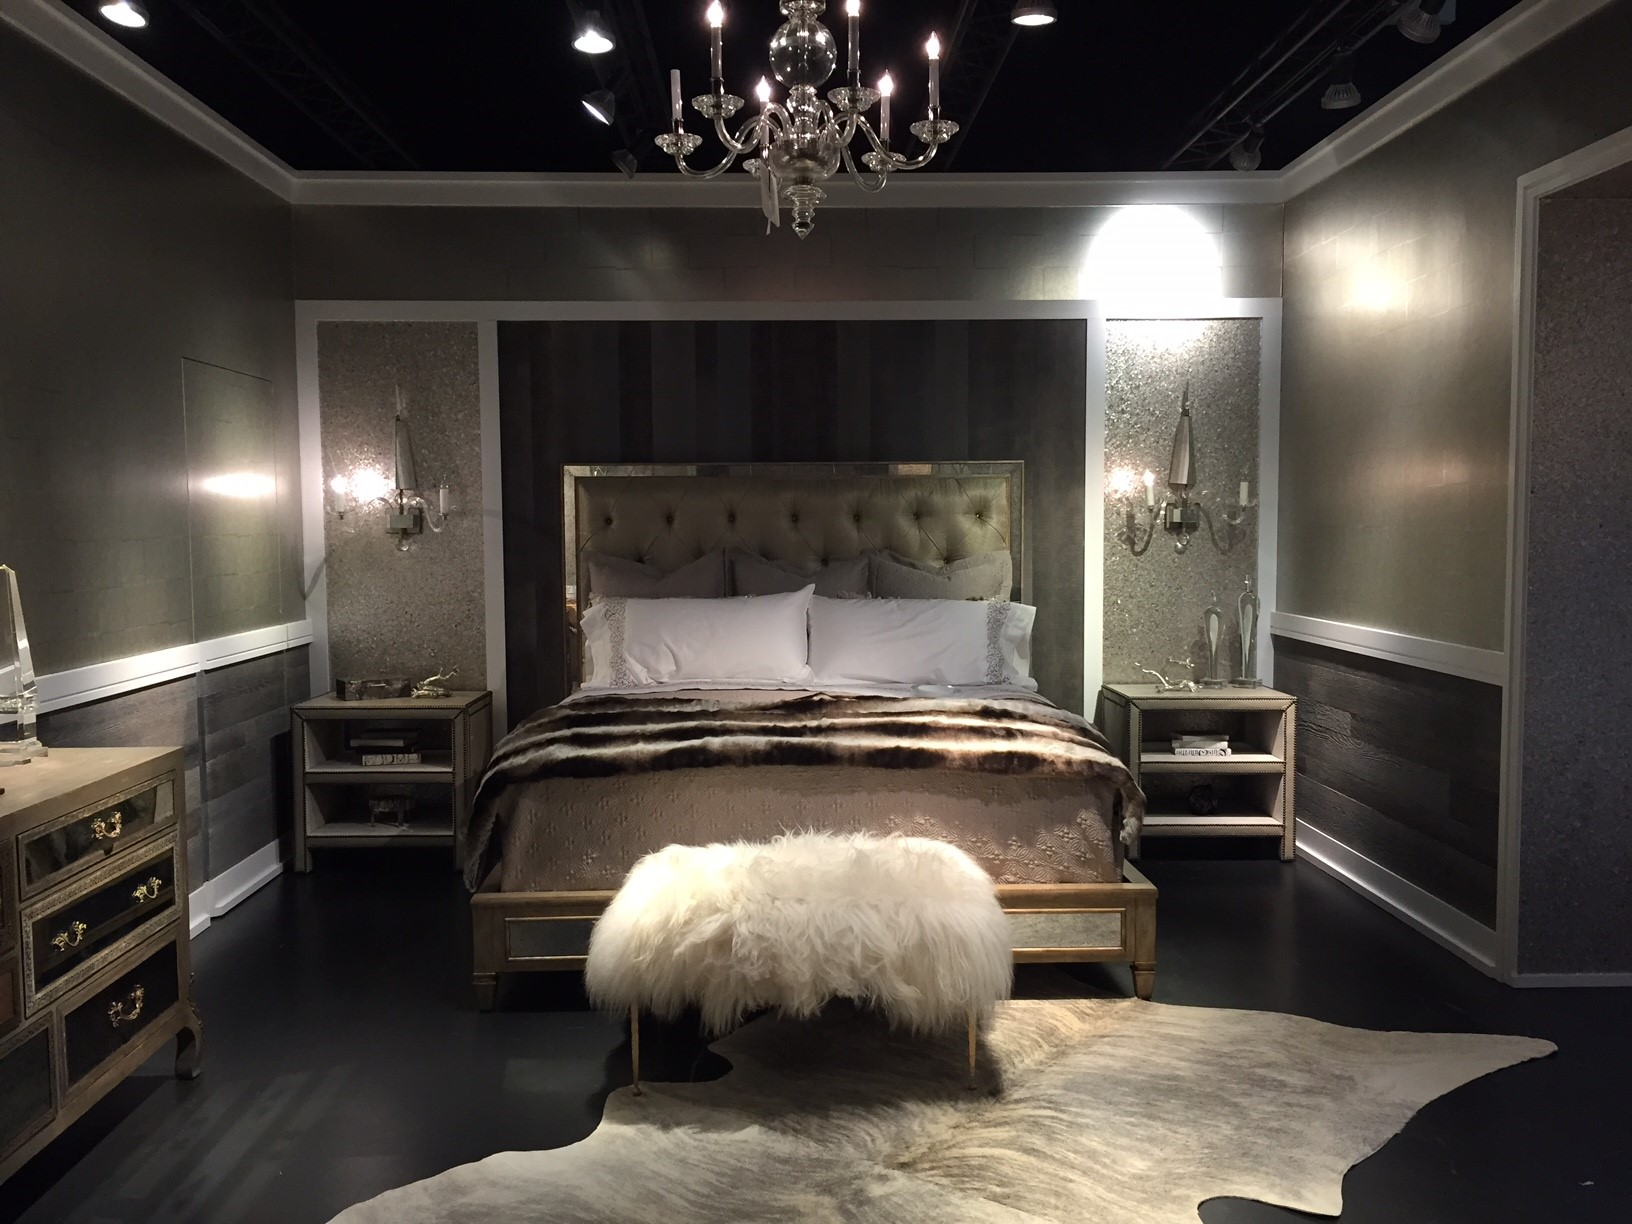 inspiration 468 rustik murdesign. Black Bedroom Furniture Sets. Home Design Ideas